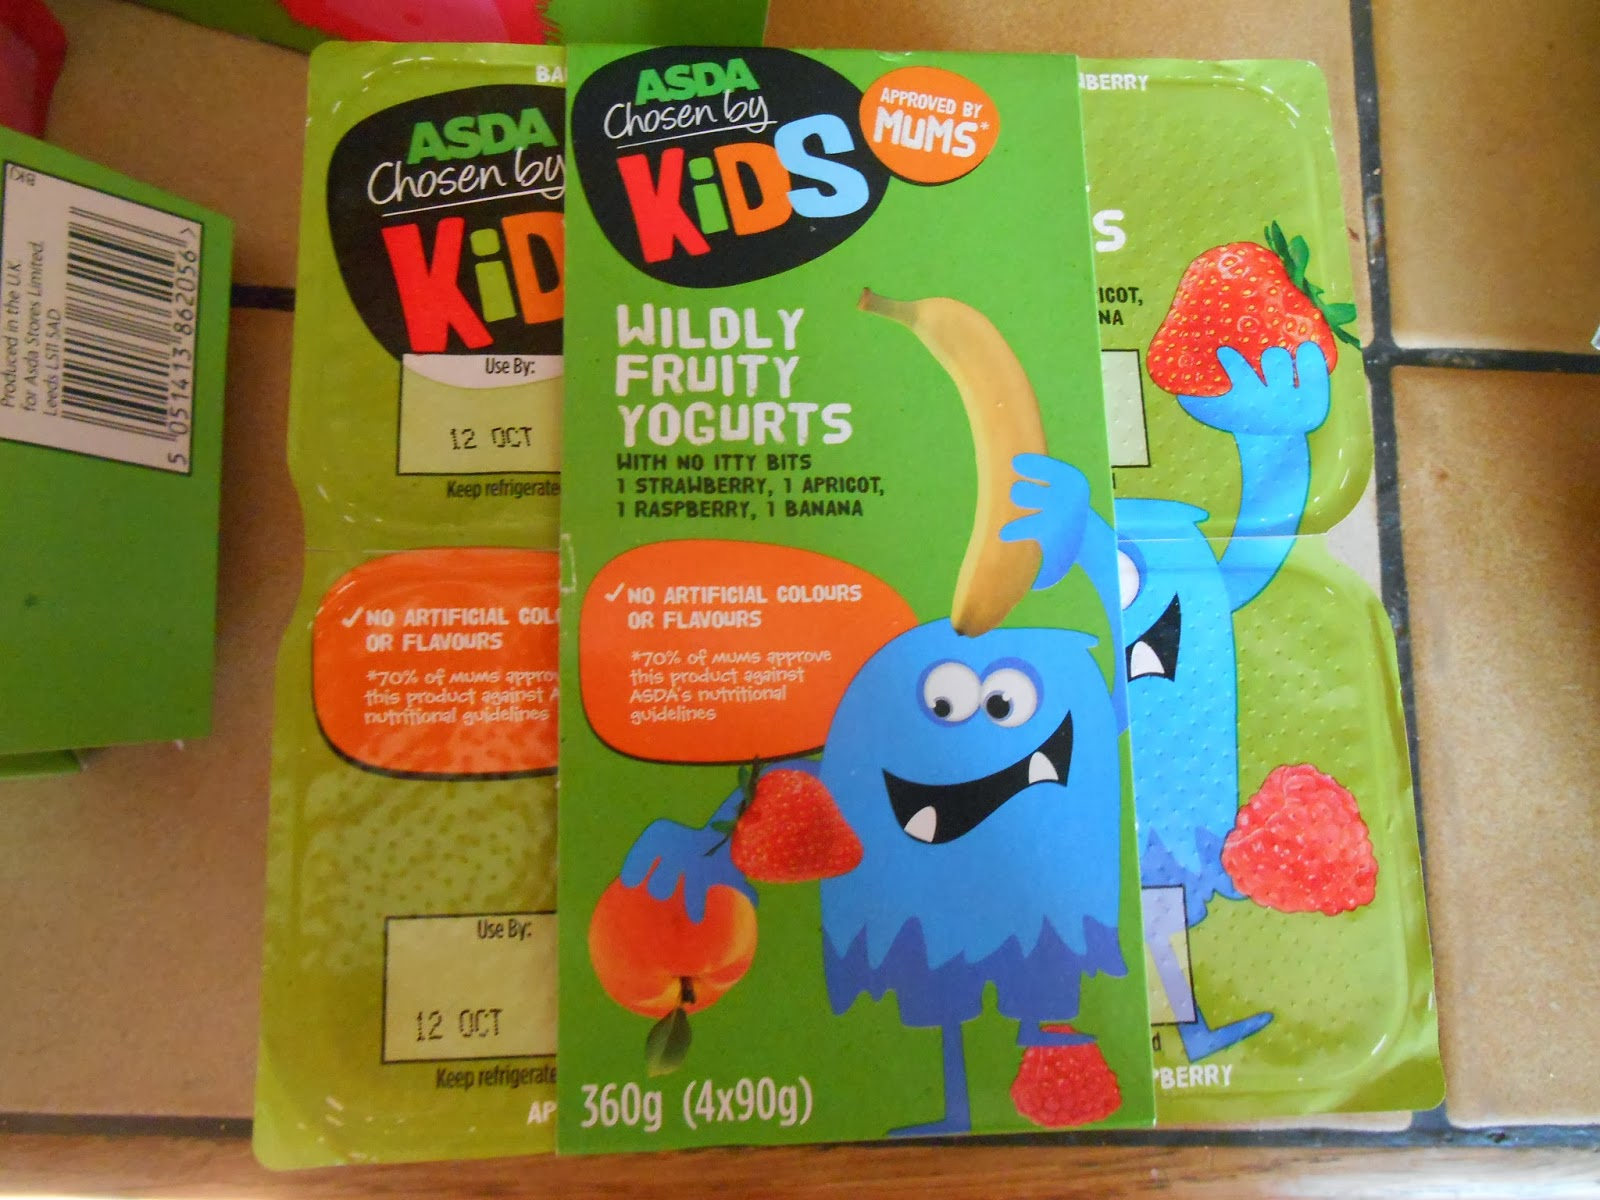 ASDA Chosen By Kids, Approved By Mums review | Madhouse